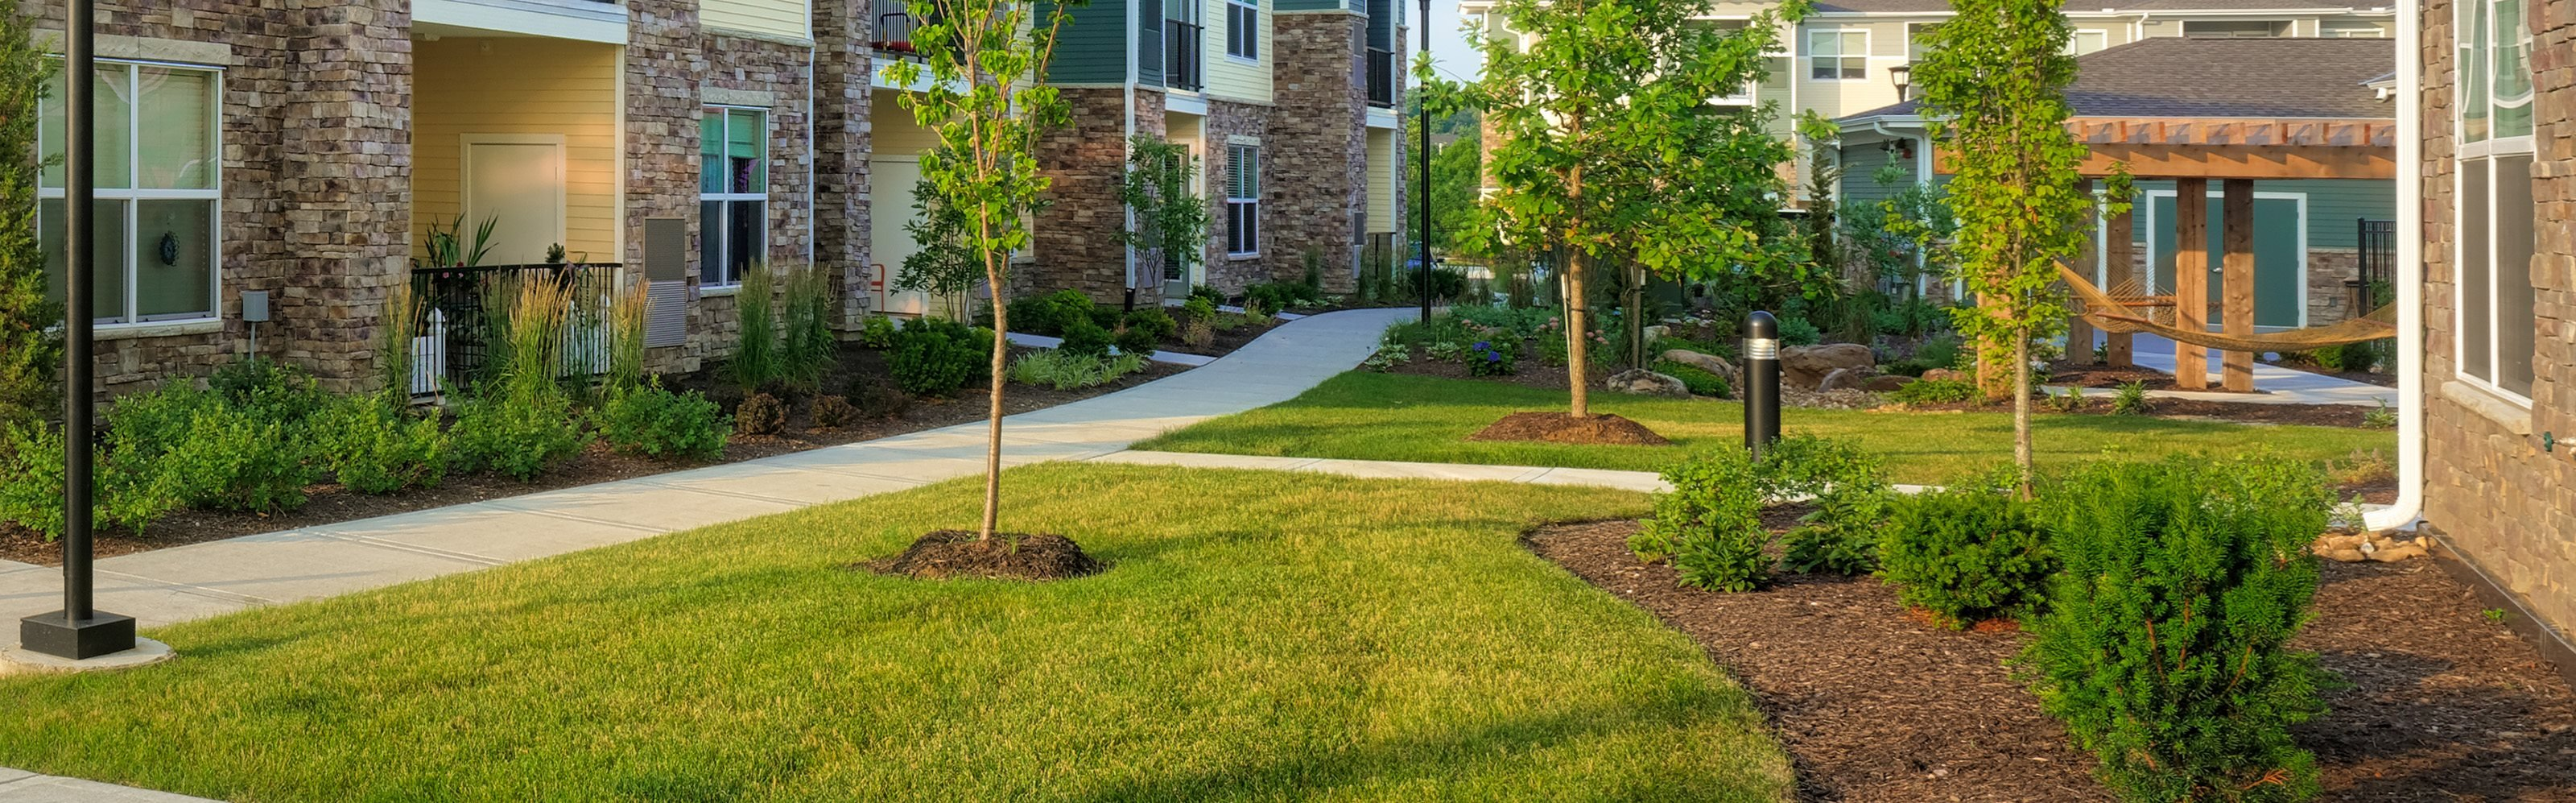 The Haven at Shoal Creek - Exterior path